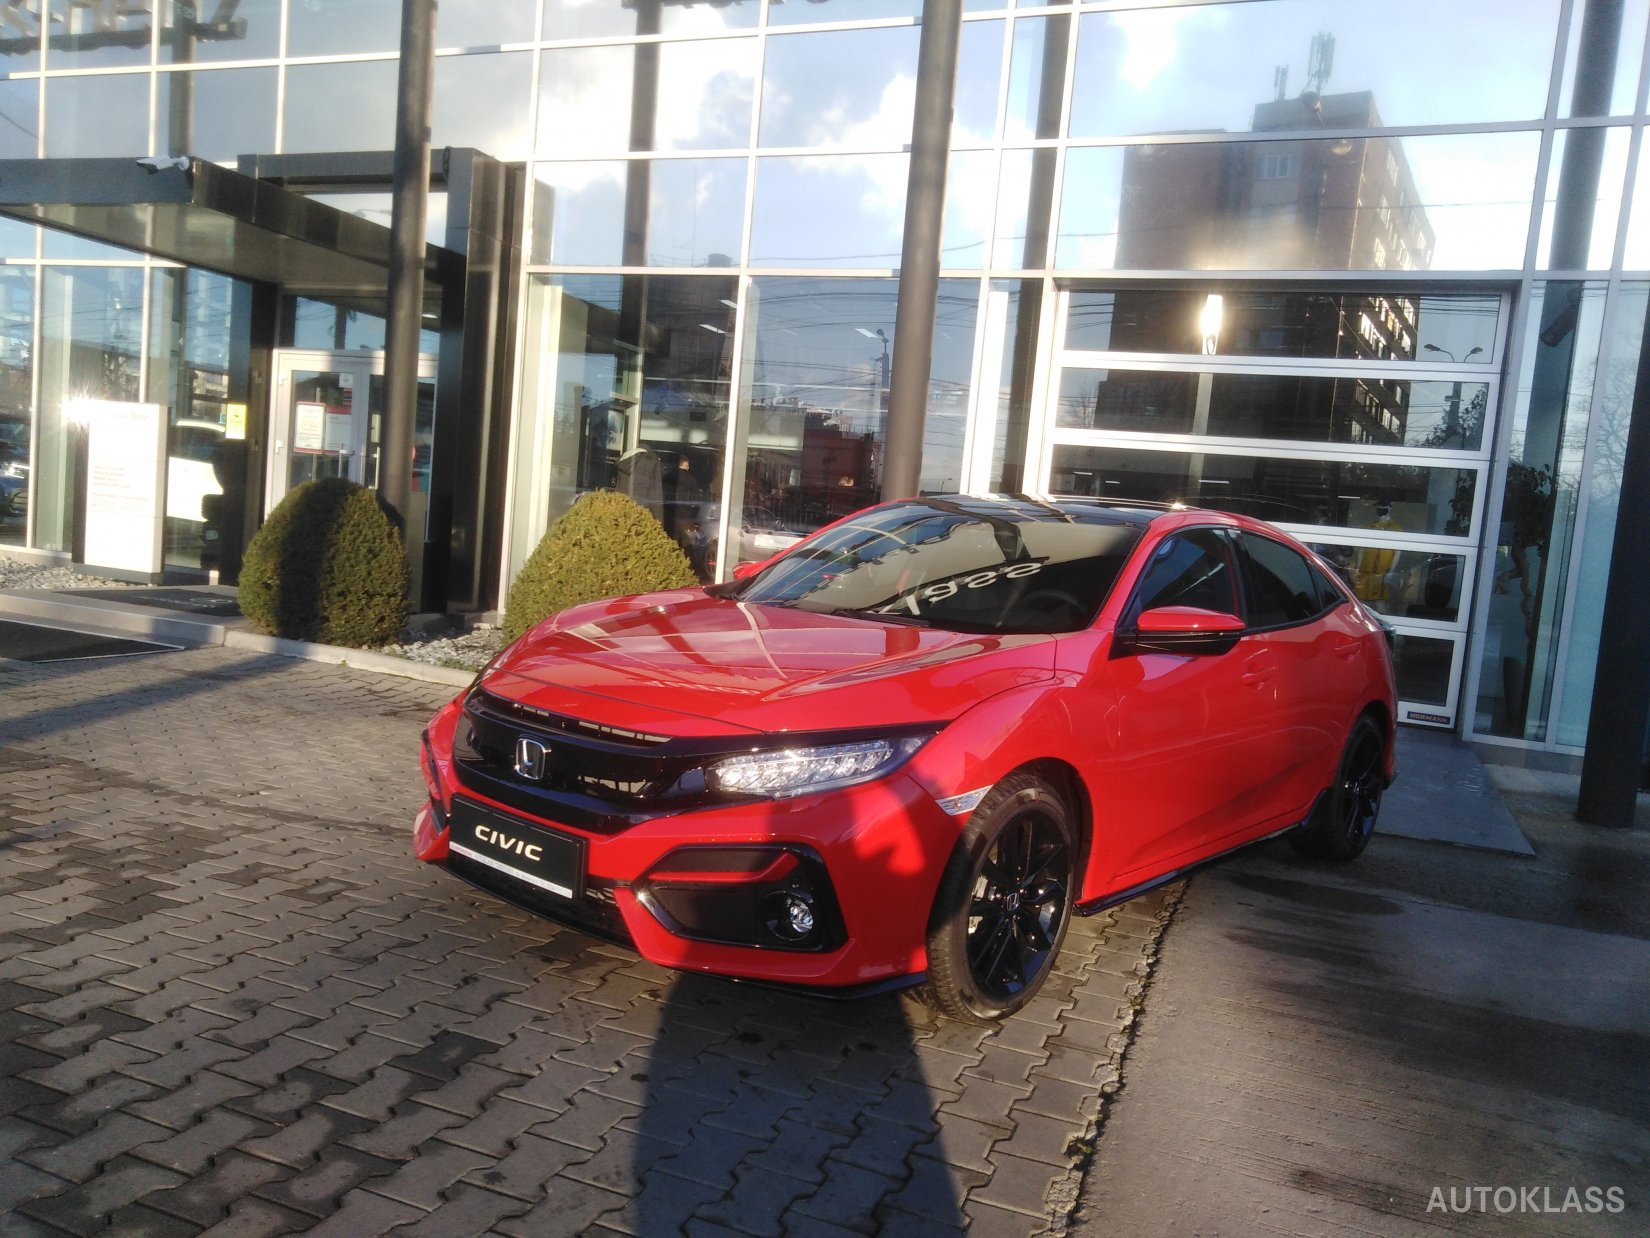 HONDA CIVIC 5D 1.5 VTEC Turbo MT Sport Plus : Honda Civic 5D